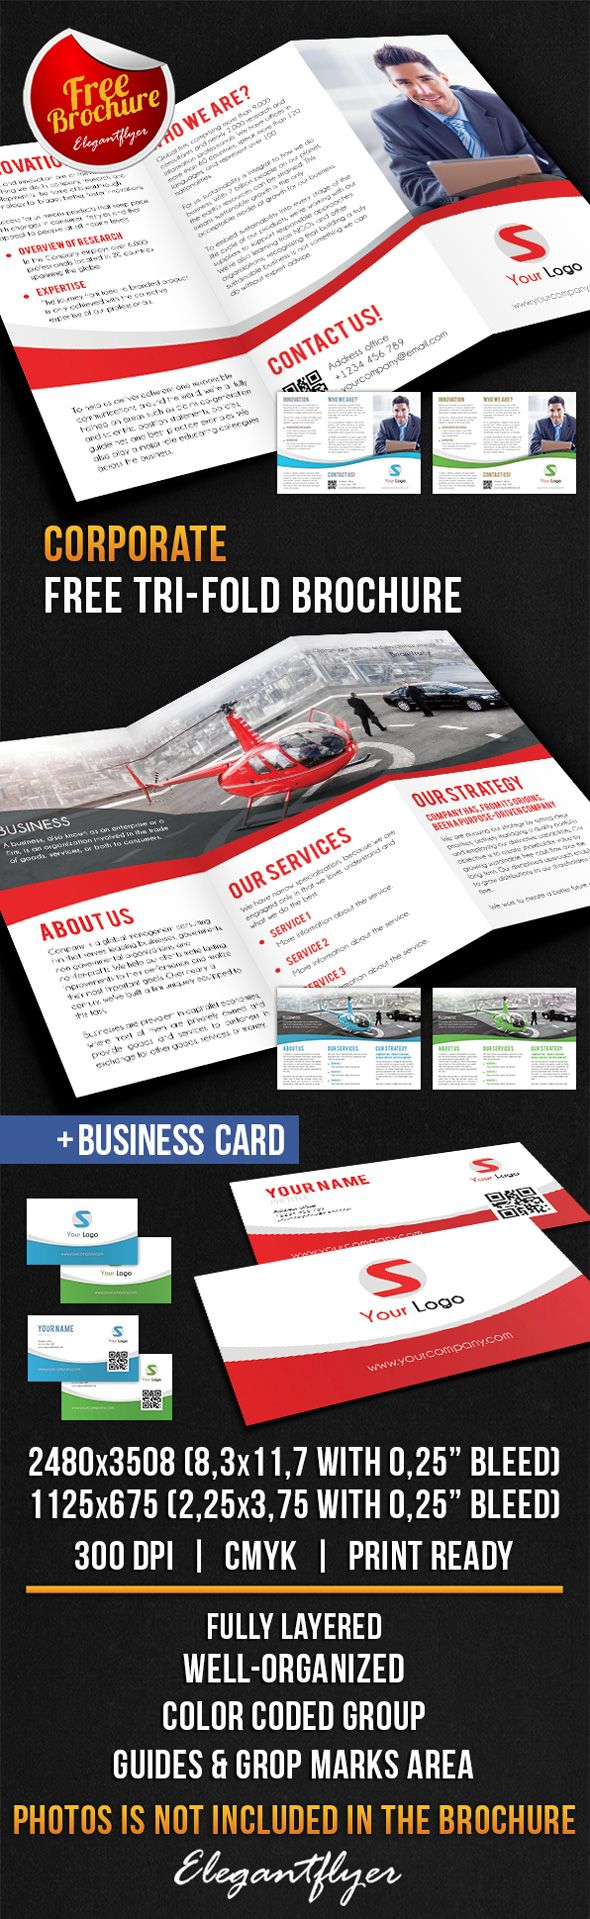 corporate tri fold brochure free psd template